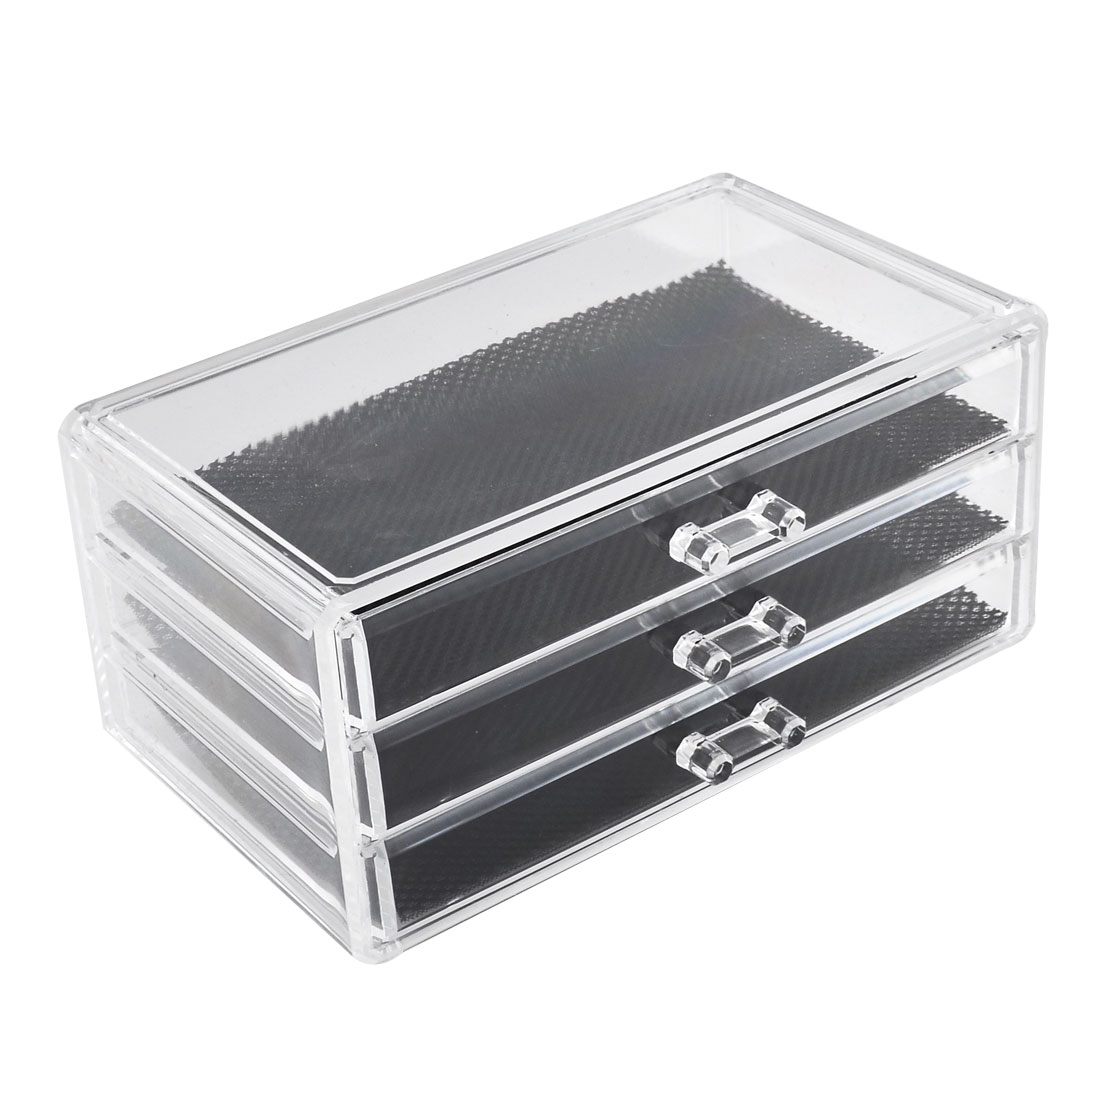 Acrylic Cosmetic Storage Drawer Case Jewelry Organizer Holder Display Box